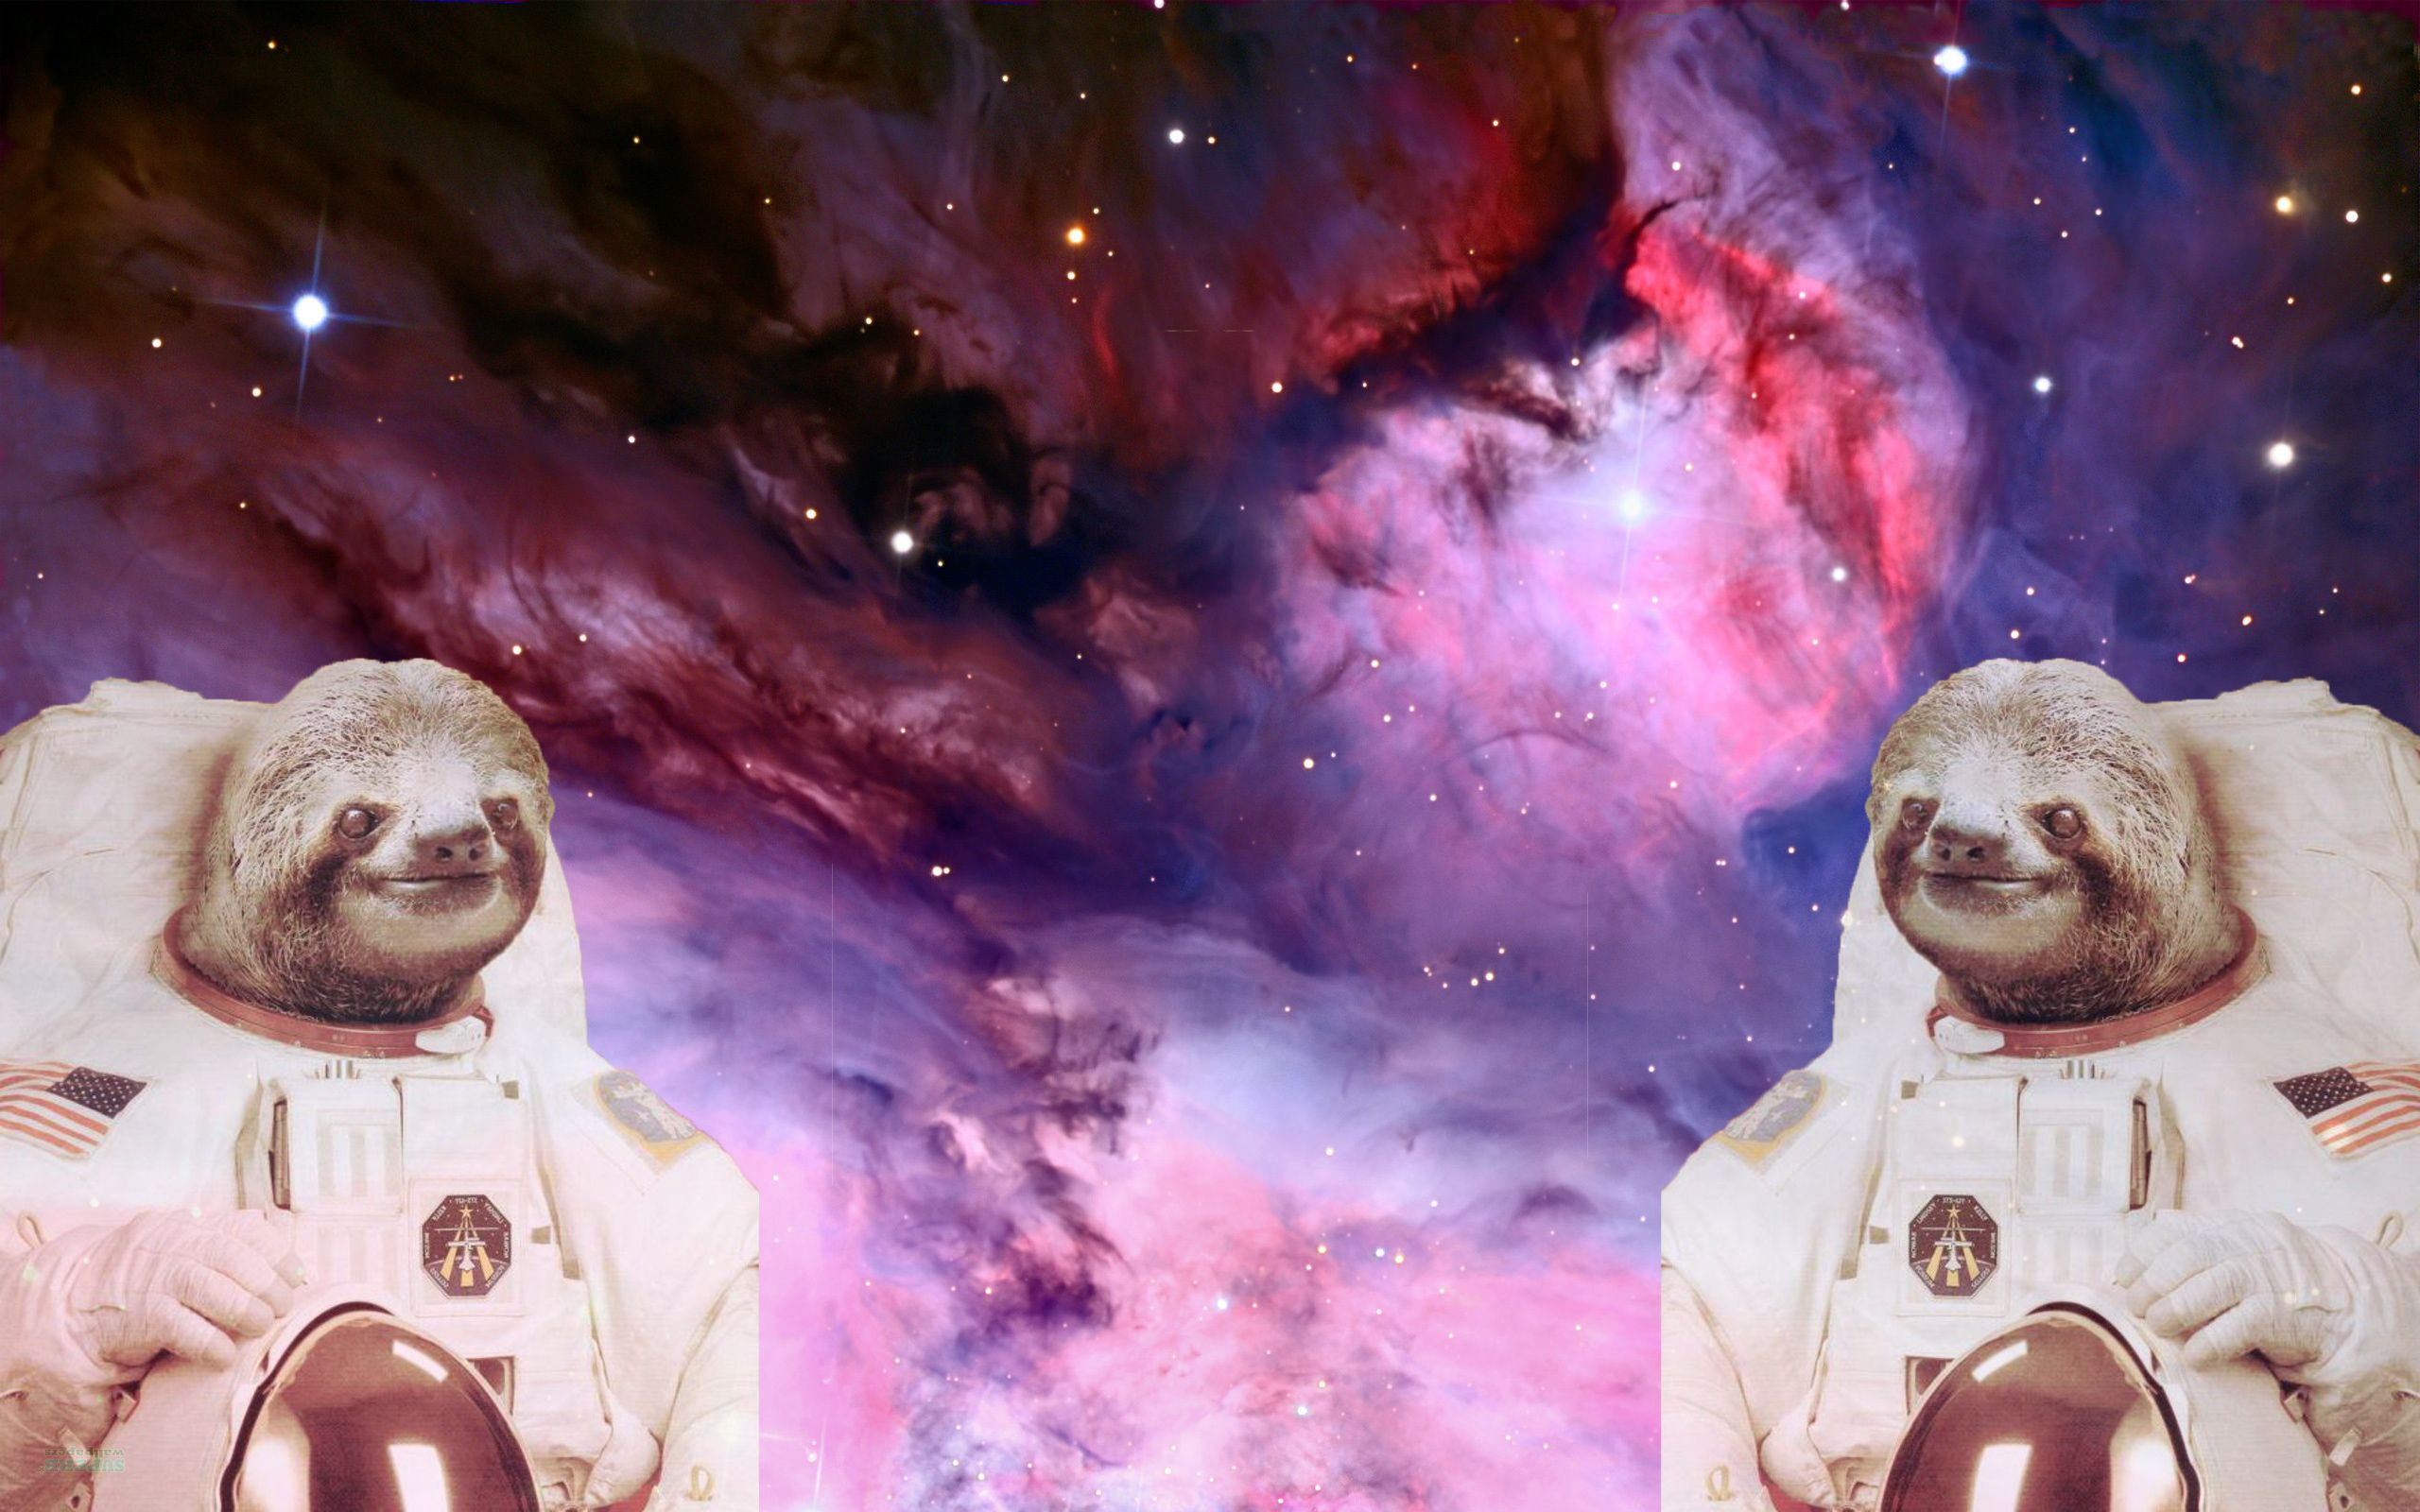 Astronaut Sloths in Space wallpaper I made wallpapers 2560x1600